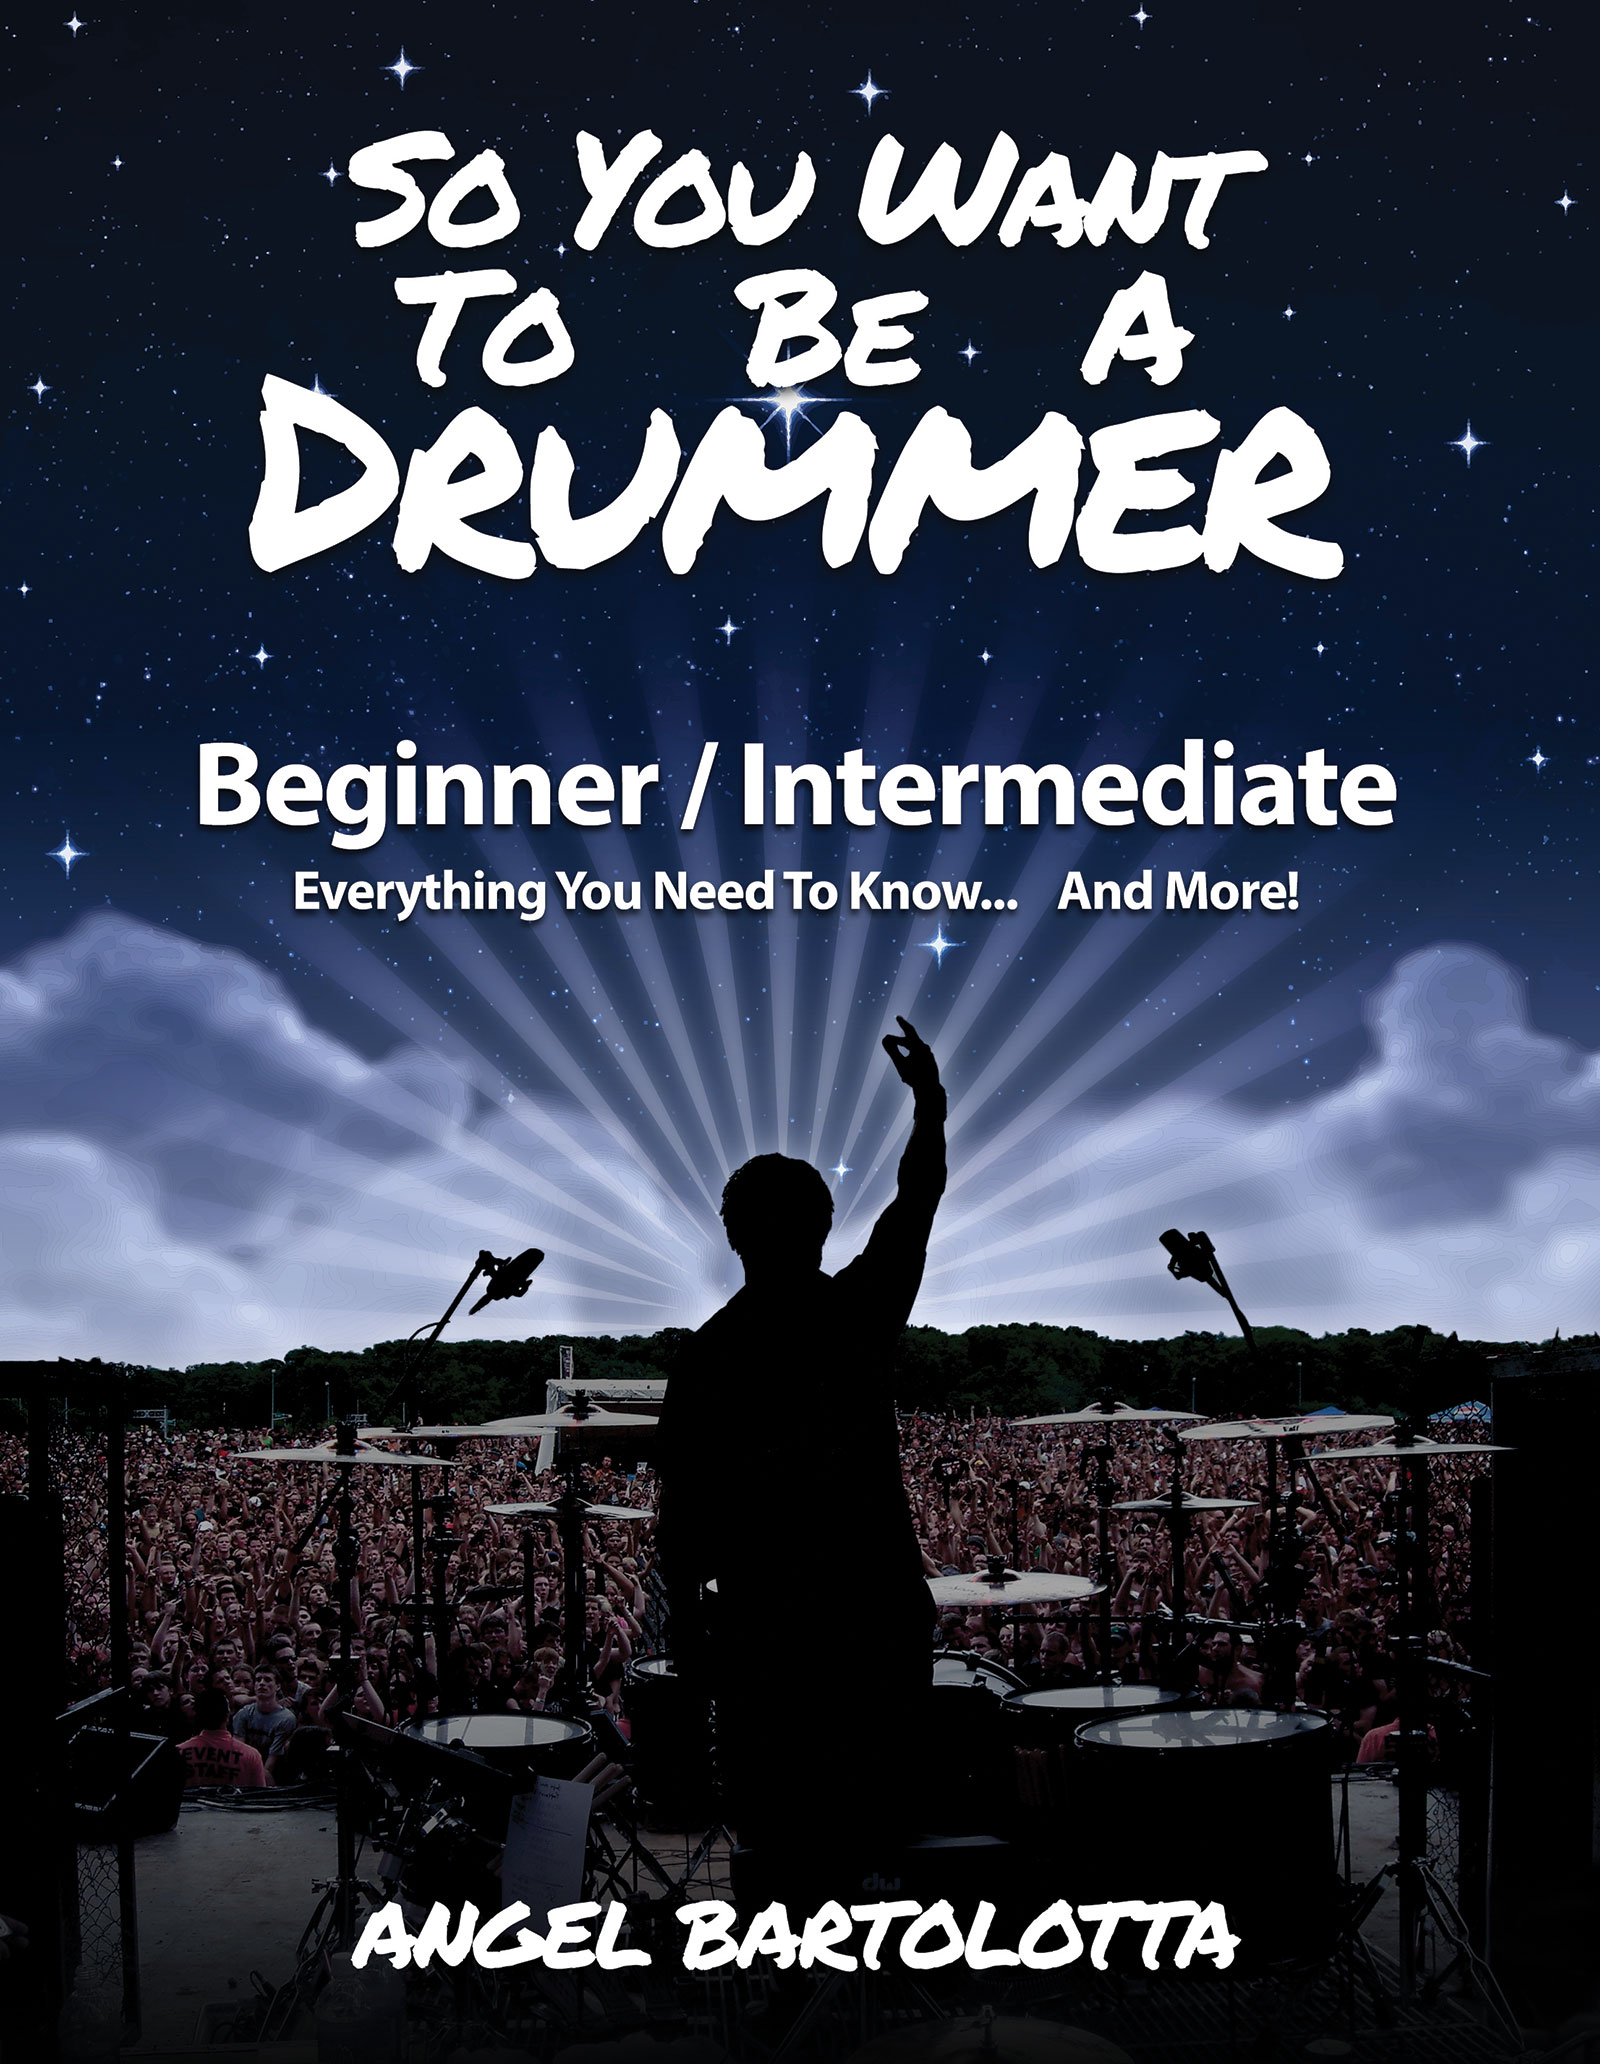 So you want to be a drummer book angel bartolotta home product so you want fandeluxe Gallery